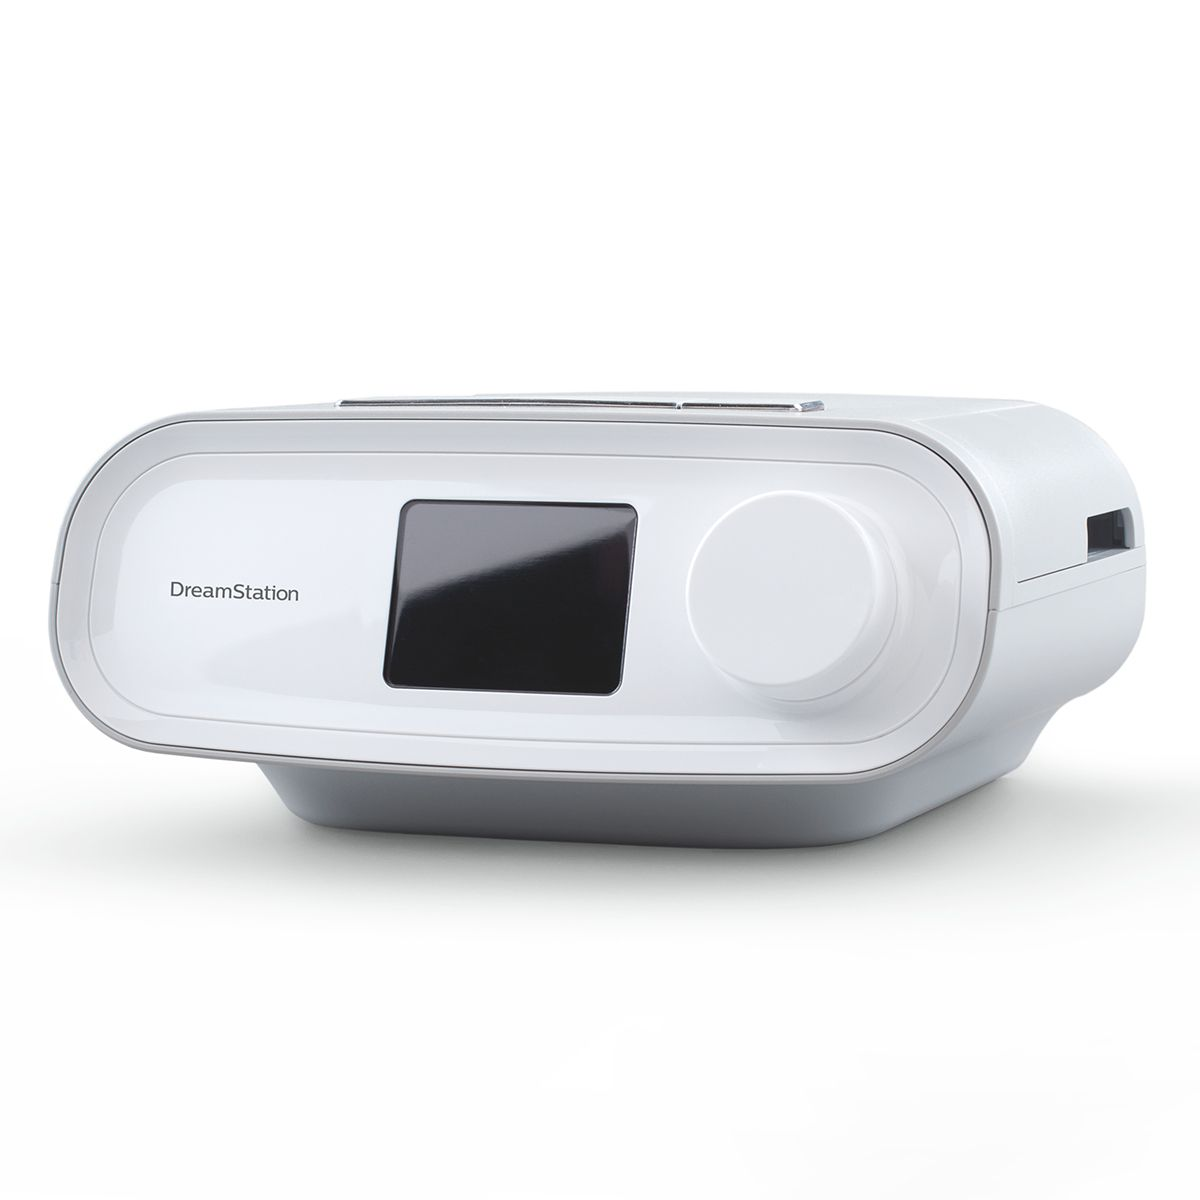 Kit CPAP Automático DreamStation Philips Respironics + Máscara Nasal Swift FX Resmed